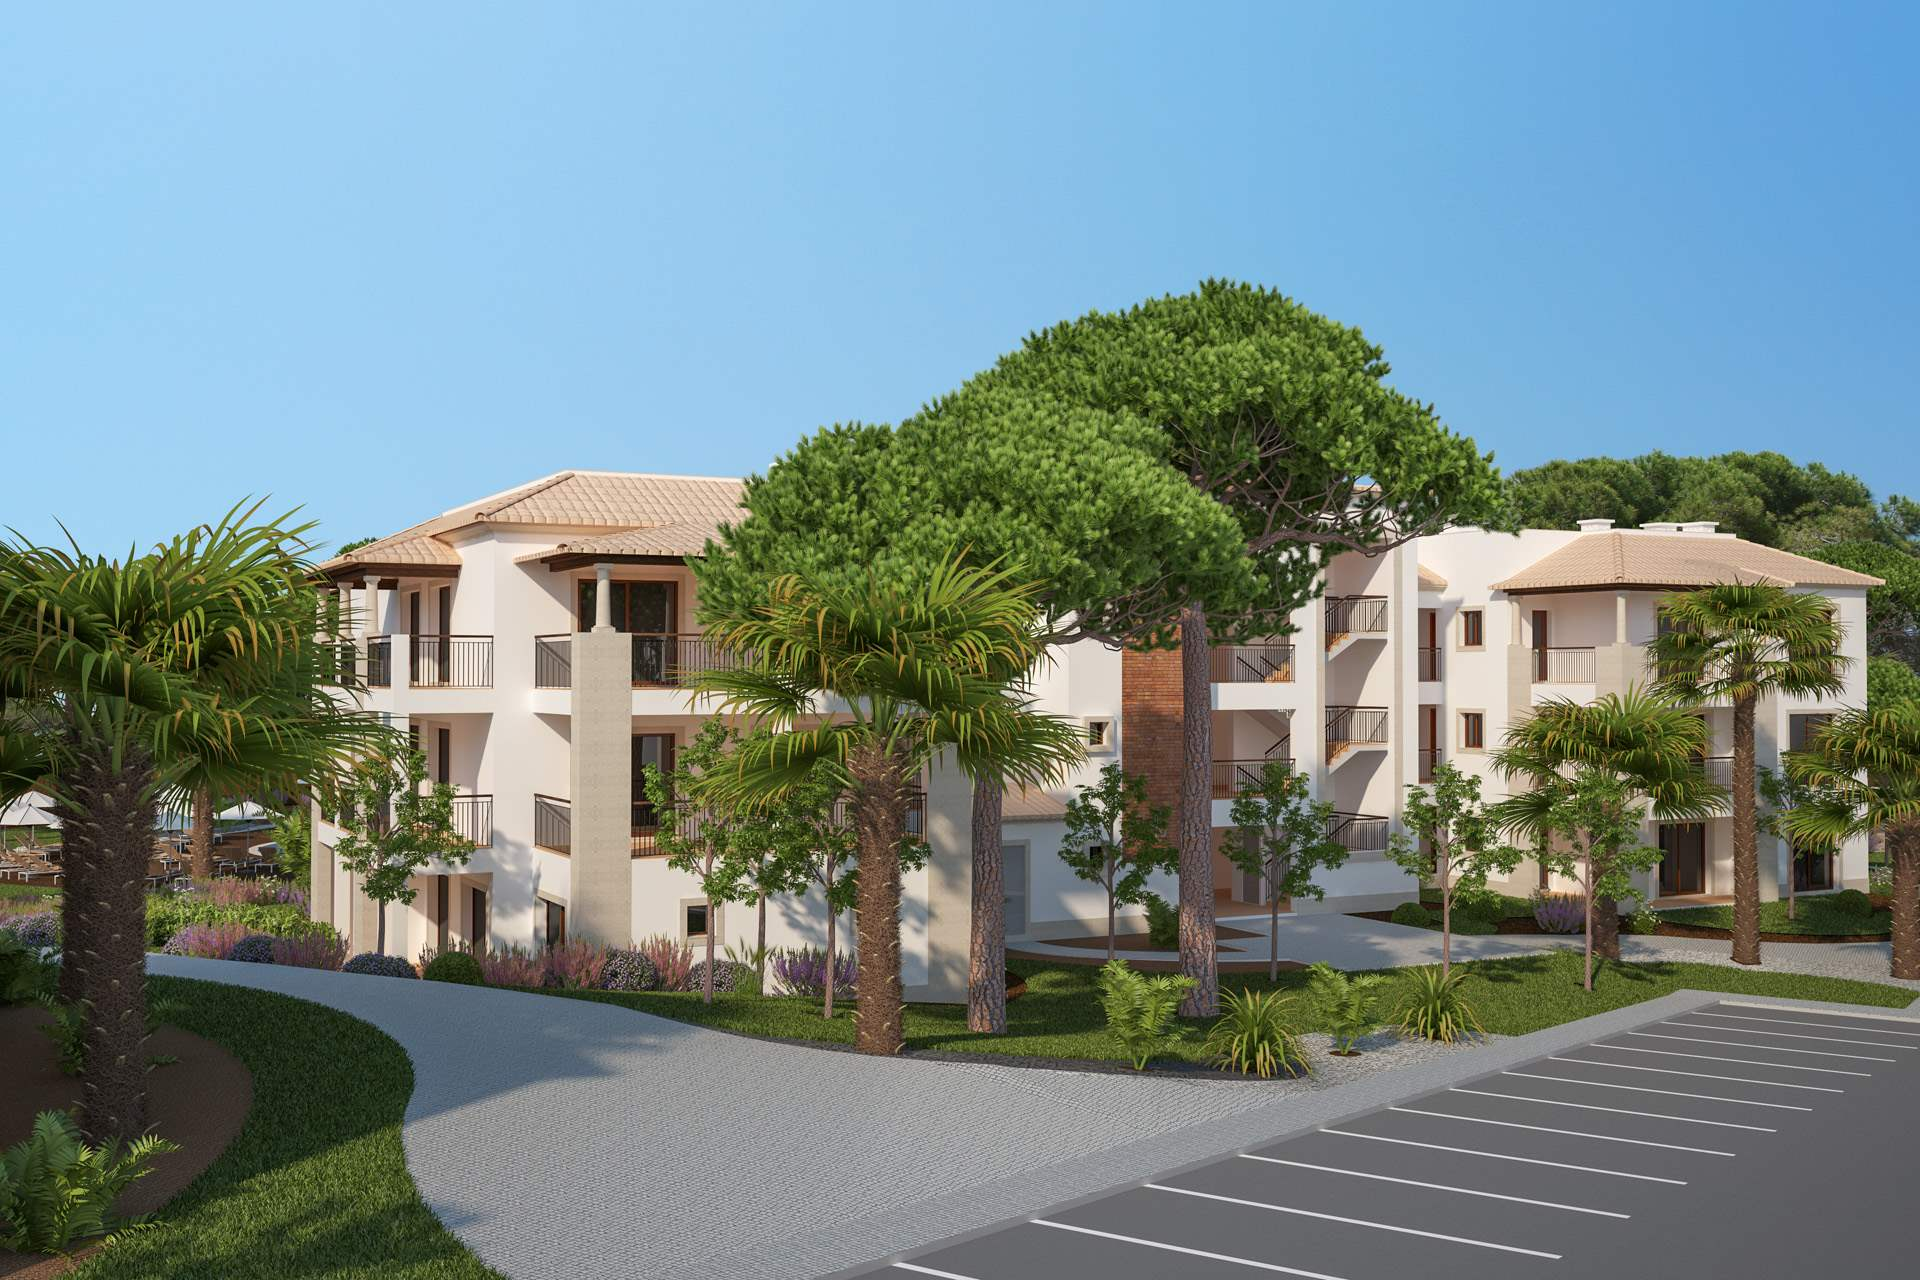 Pine Cliffs Gardens, Two Bedroom Suite, S/C Basis, 2 bedroom apartment in Pine Cliffs Resort, Algarve Photo #23